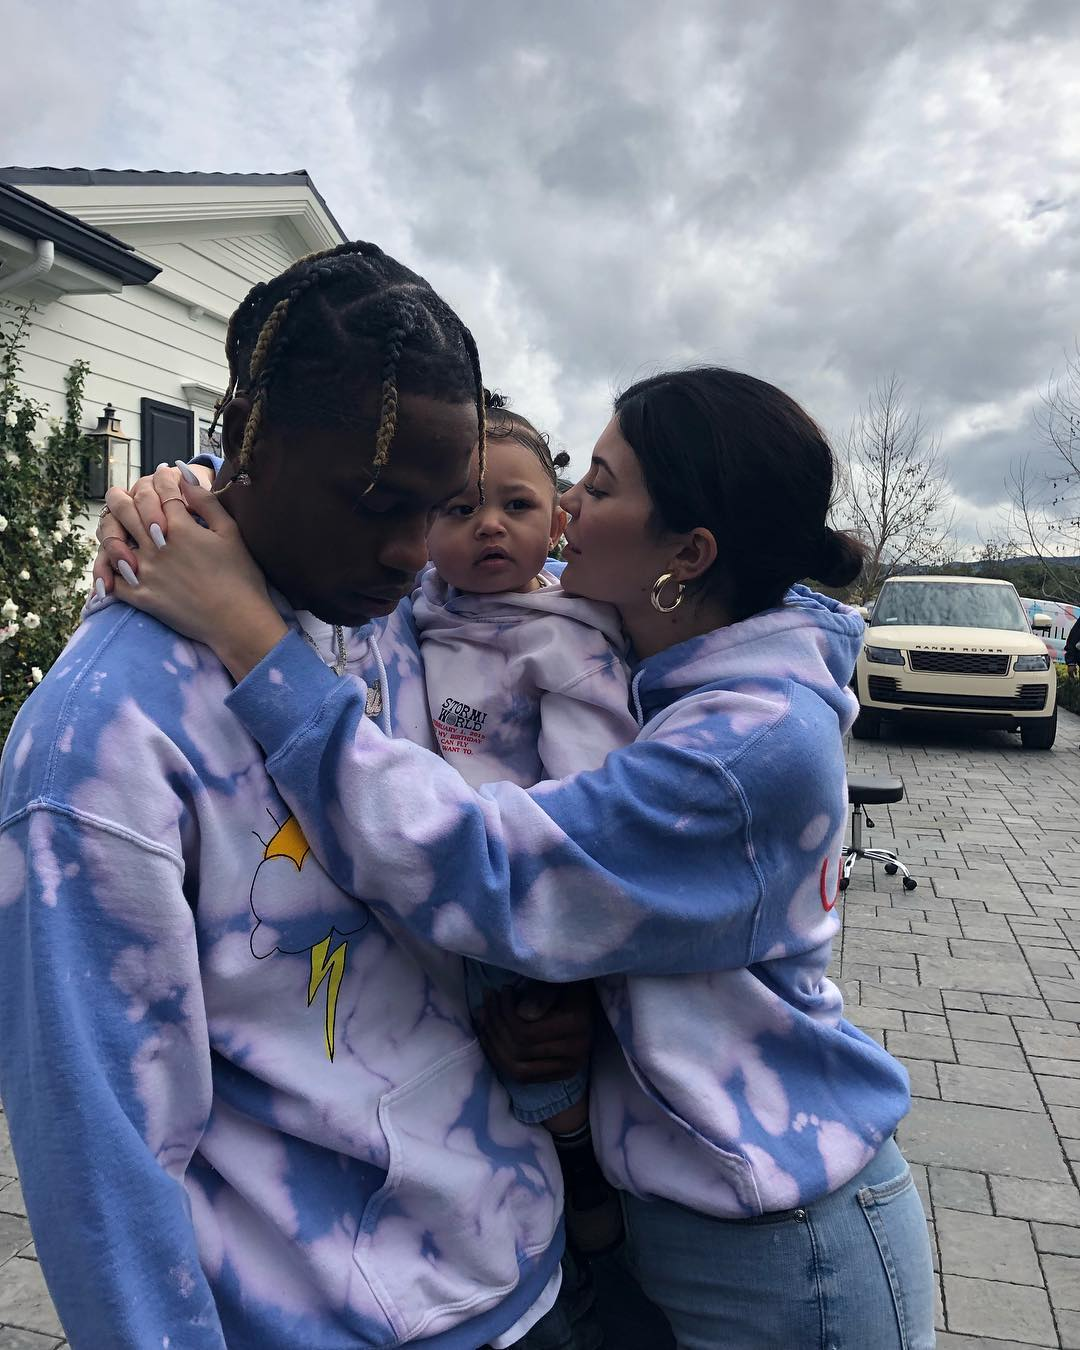 Kylie-Jenner-and-Travis-Scott-with-their-daughter-Stormi